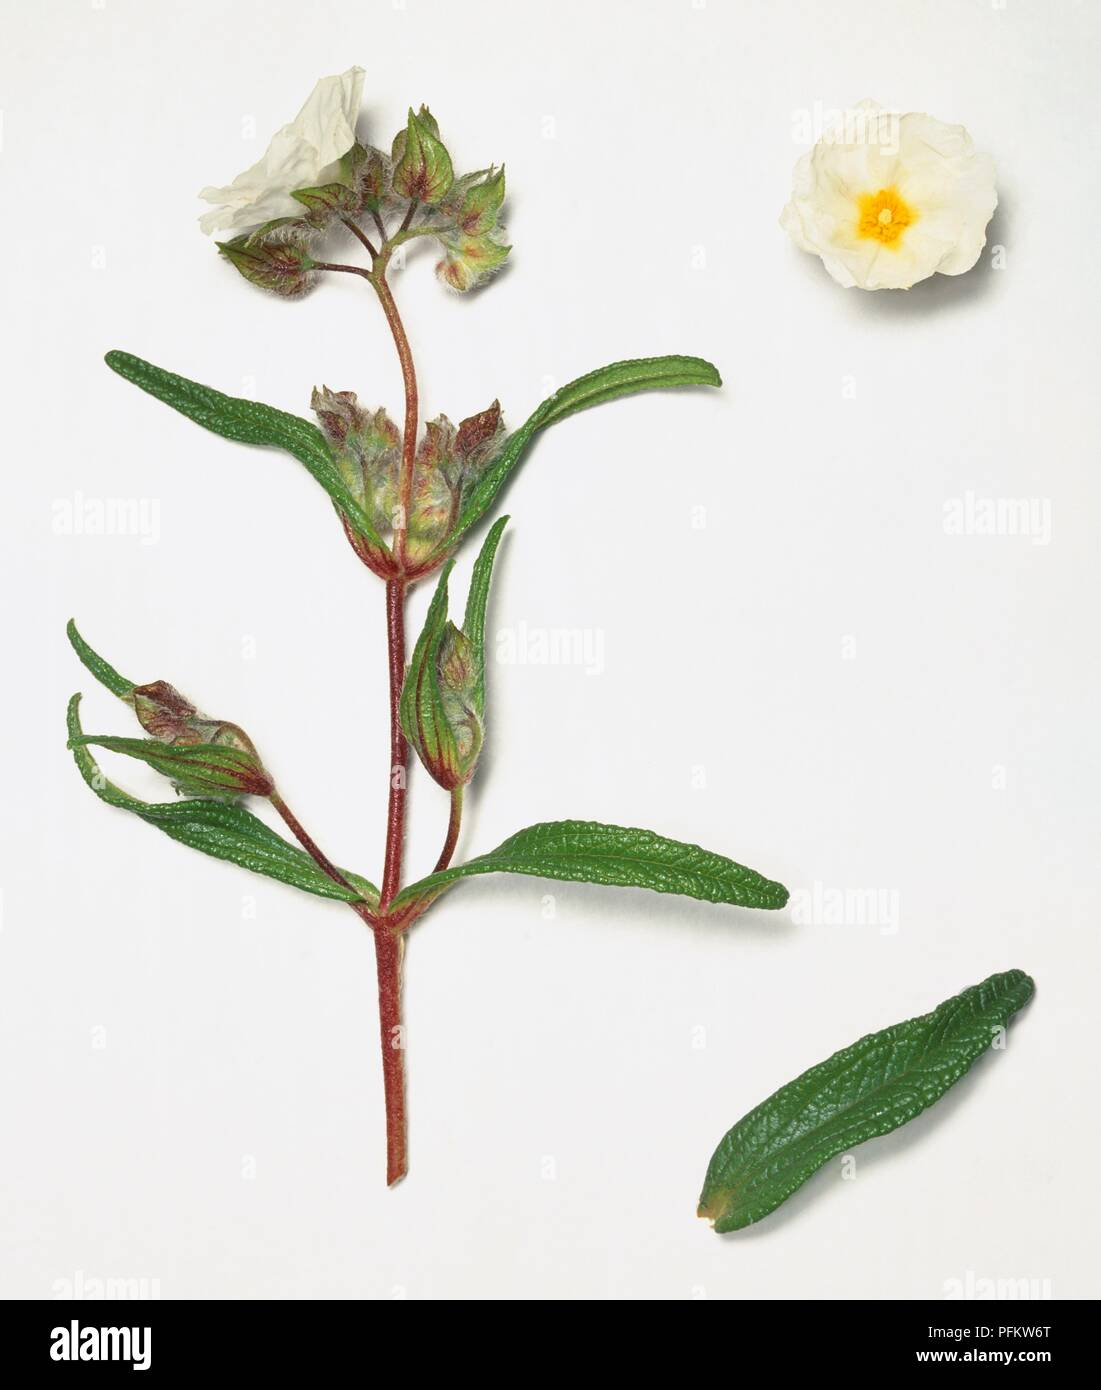 Cistus Monspeliensis Narrow Leaved Cistus White Flower Buds And